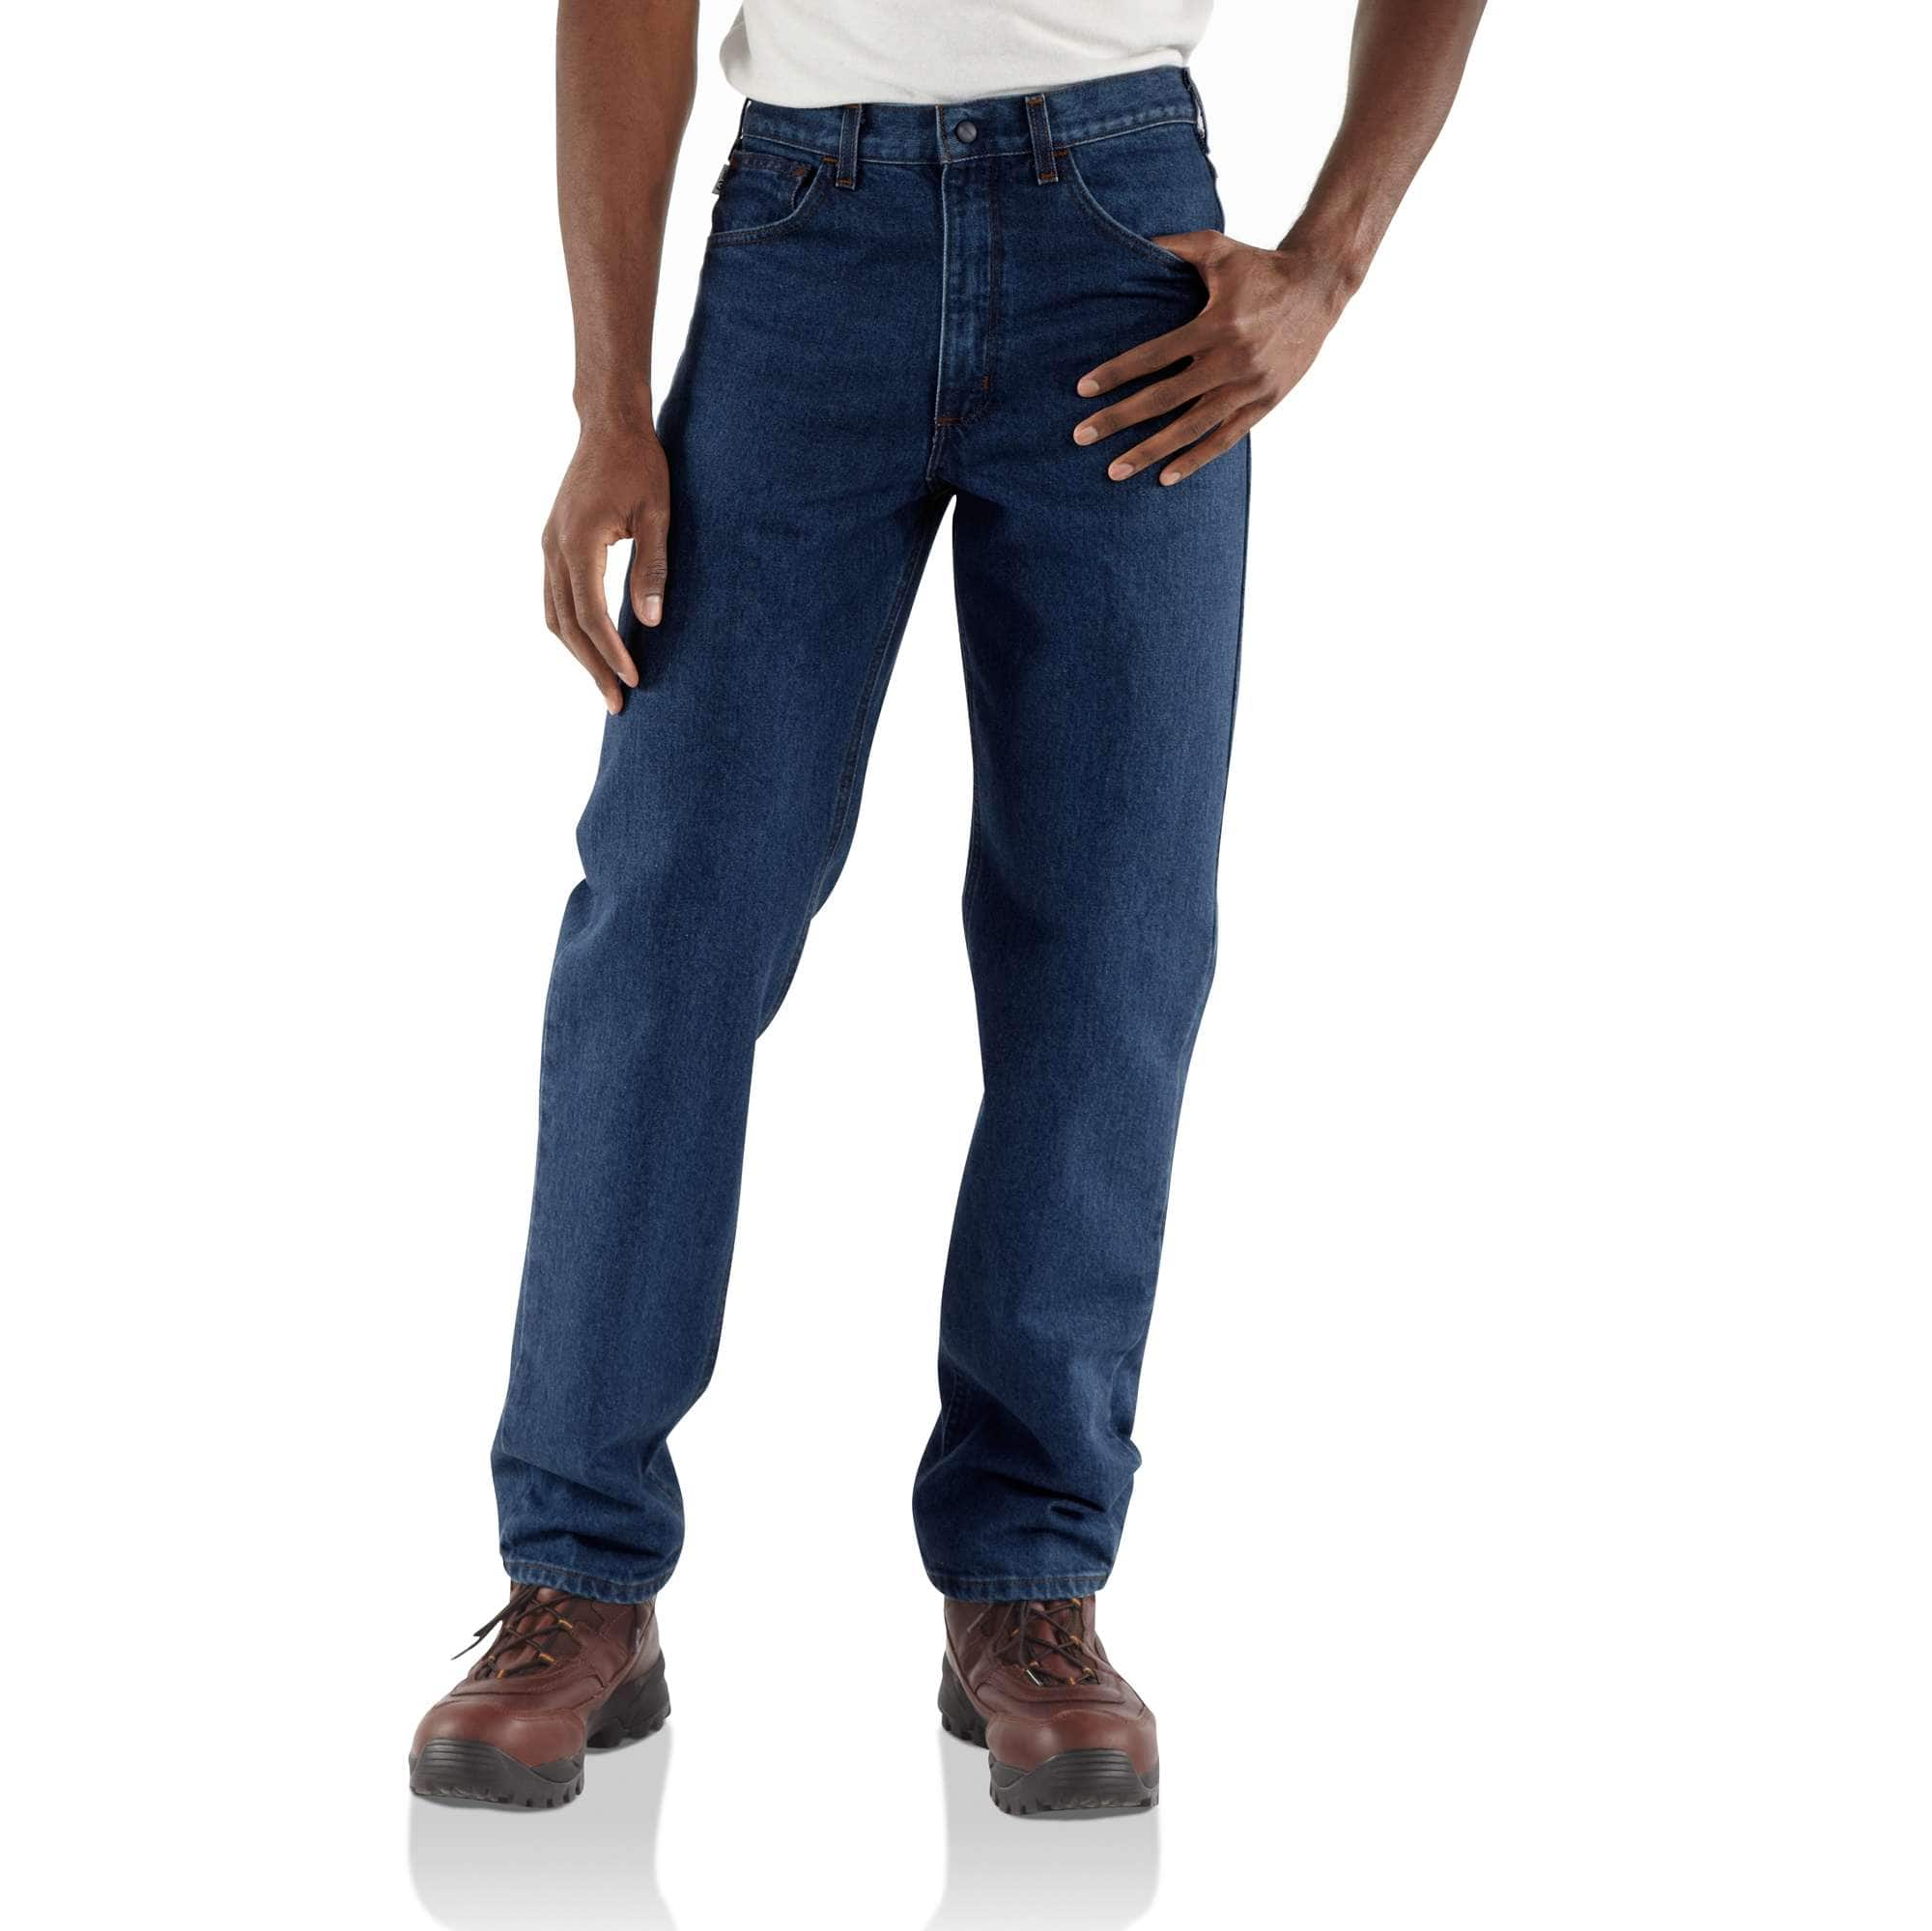 ecdd889ac230 Men s Flame-Resistant Relaxed Fit Denim Jean OUT FRB160